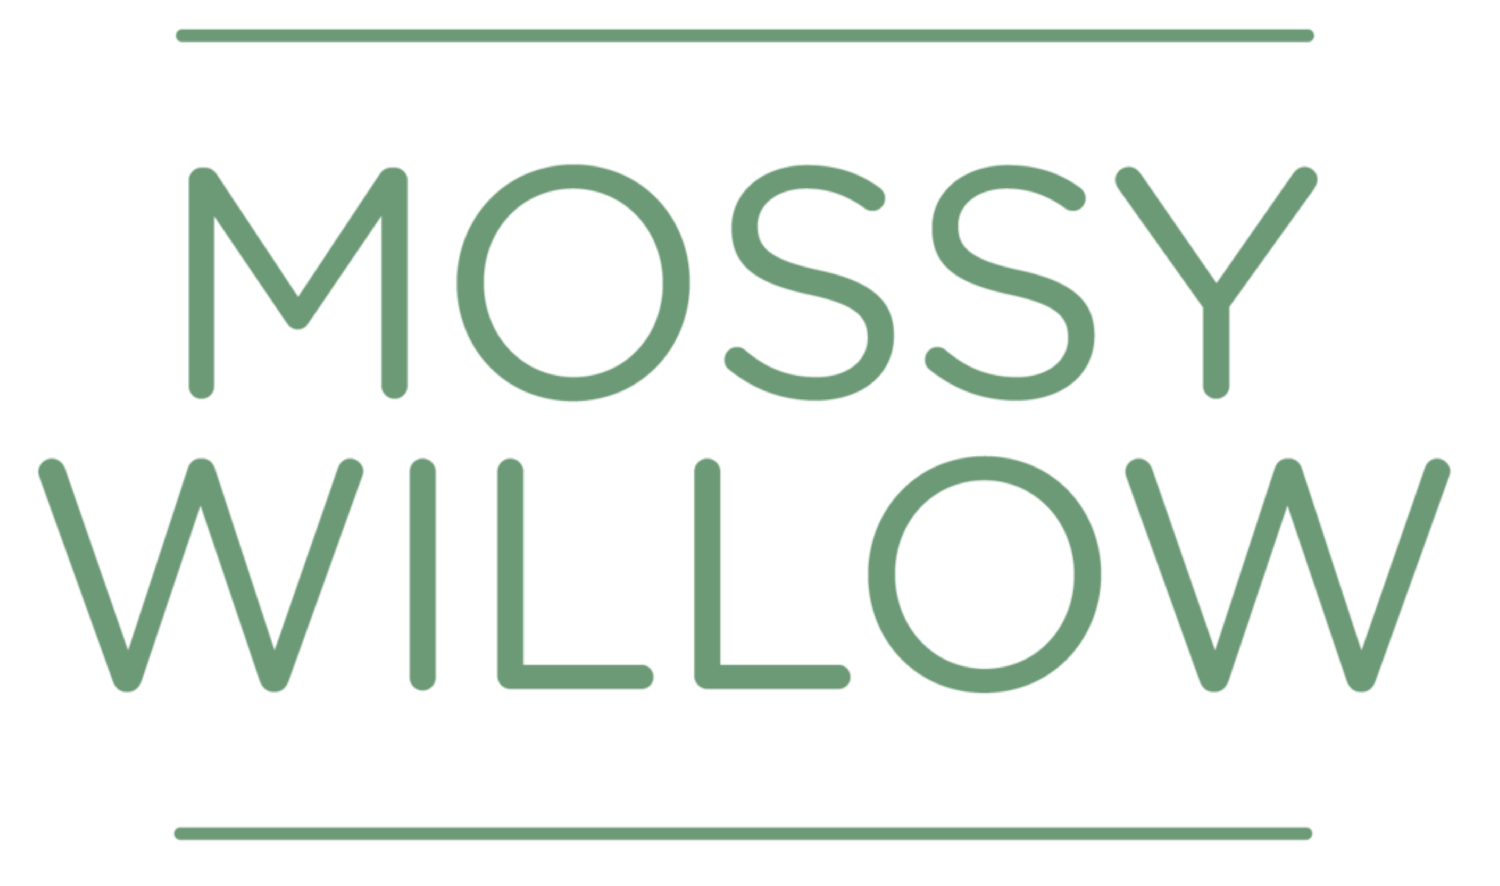 Mossy Willow Farm